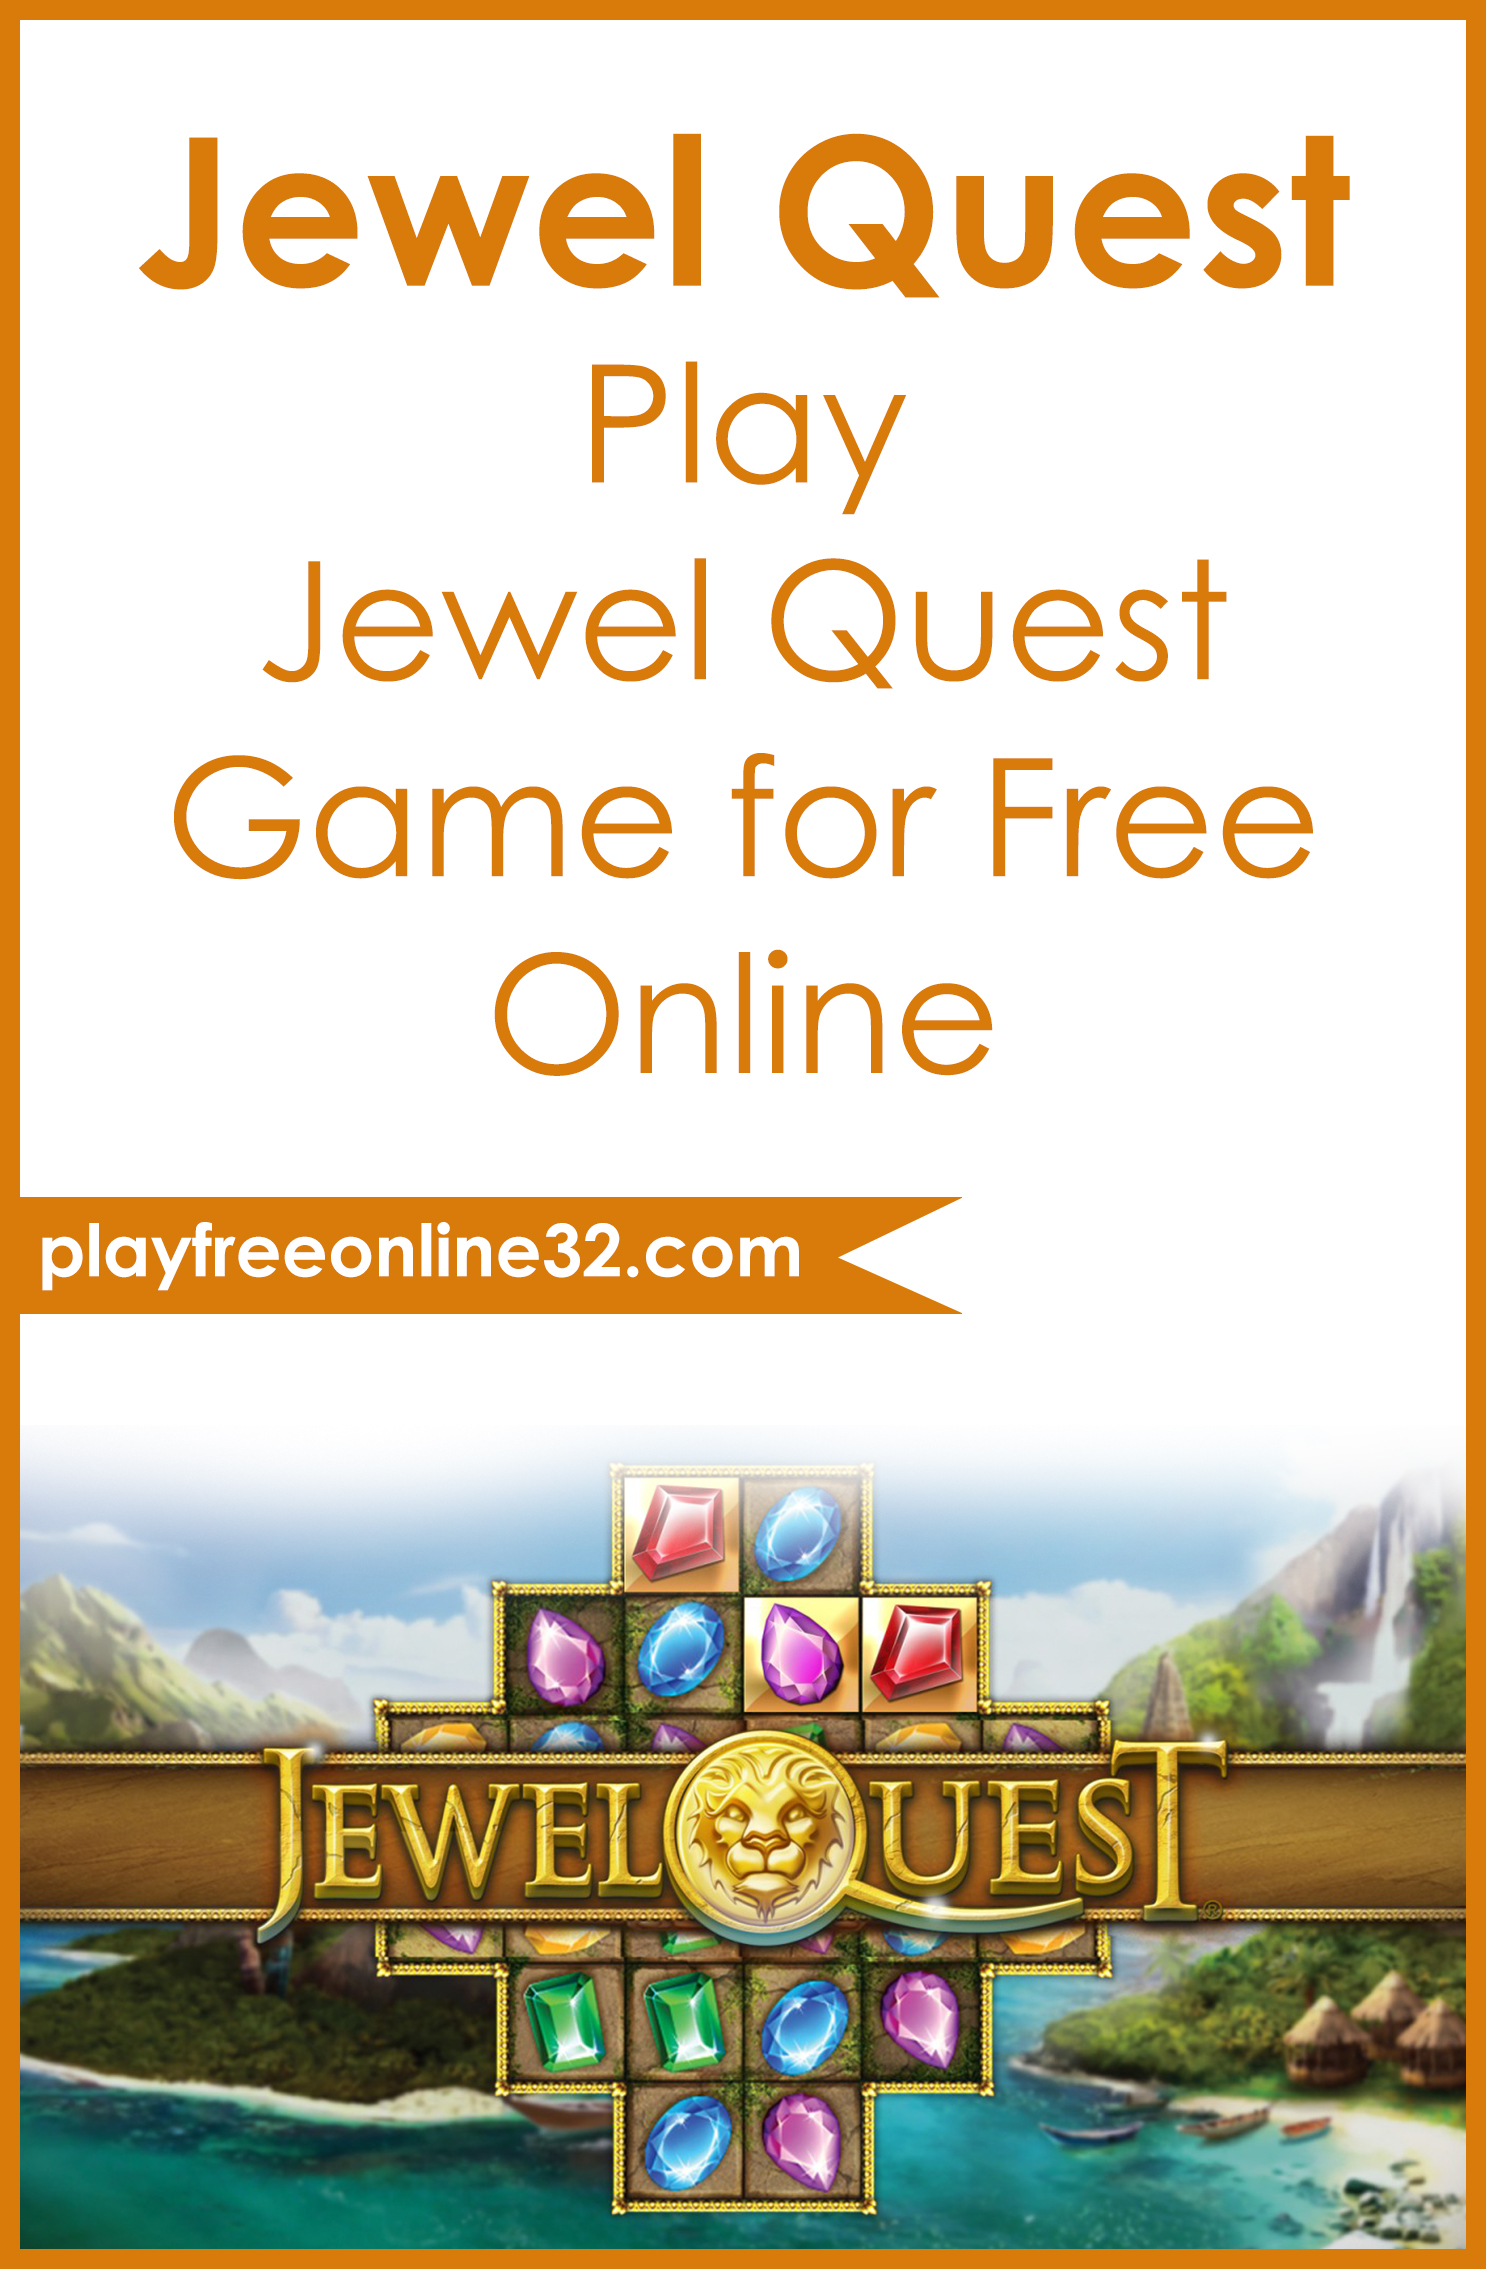 Jewel Quest • Play Jewel Quest Game for Free Online Pinterest post